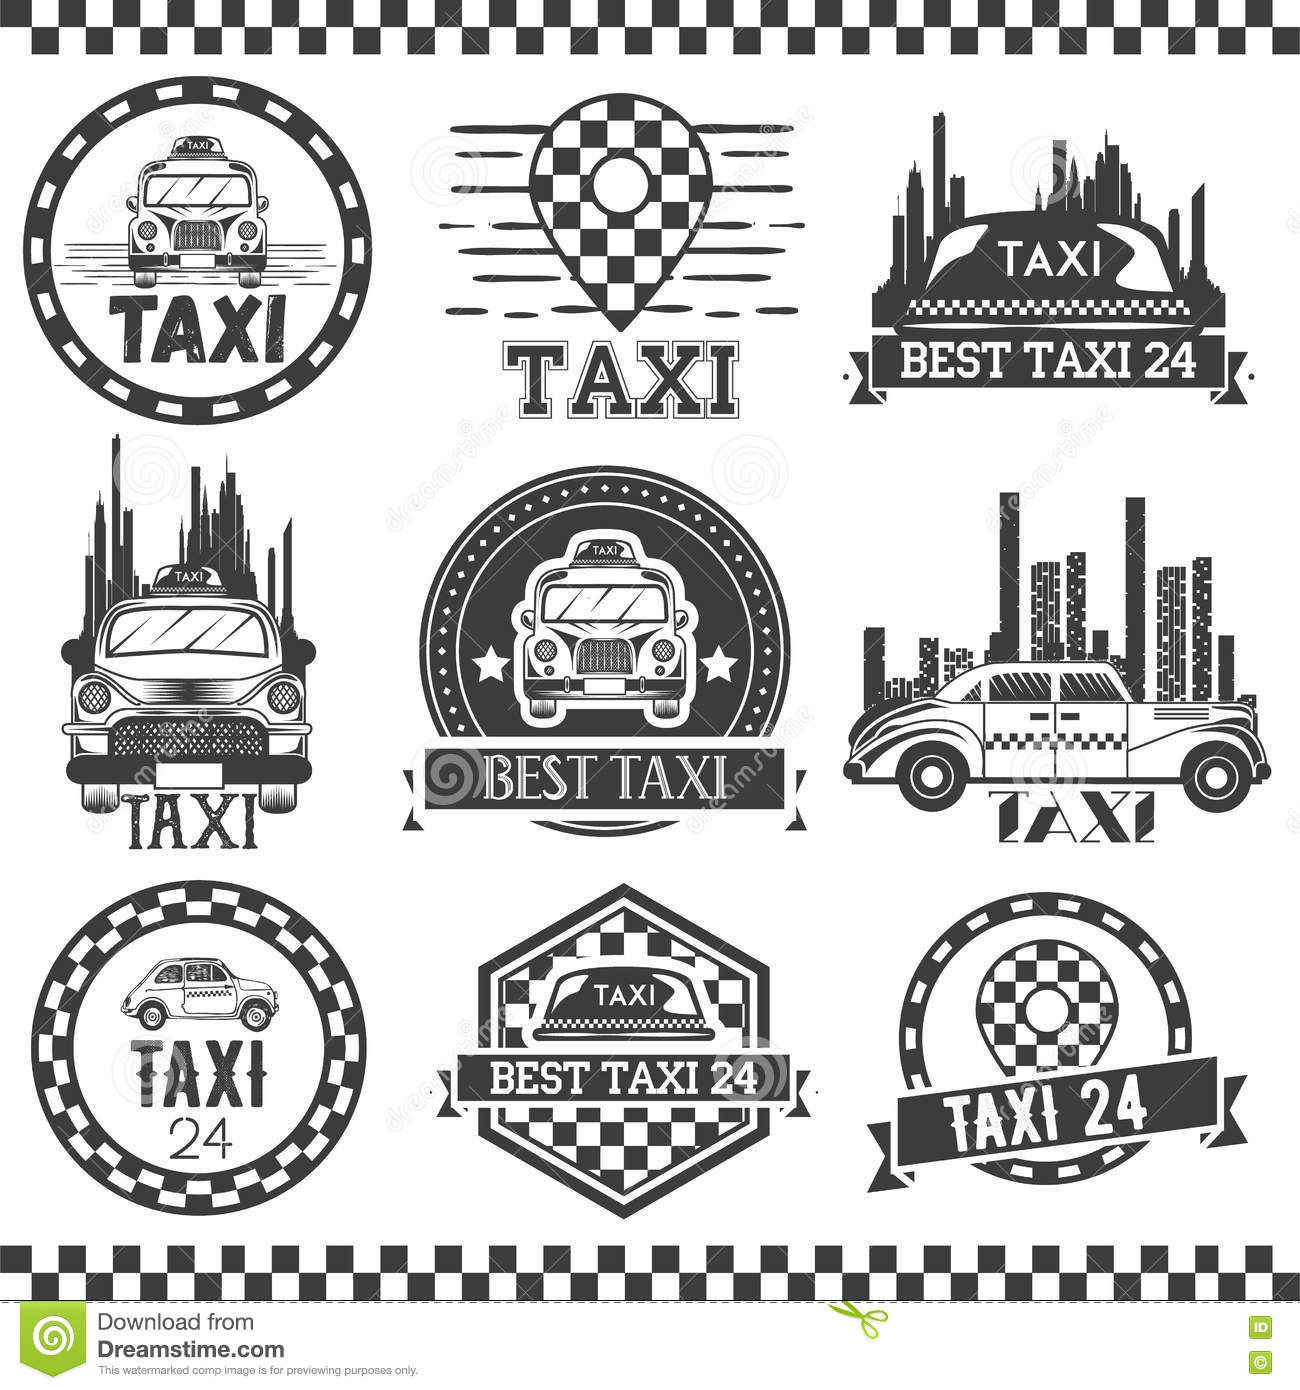 Taxi service design royalty free illustration for Service design firms